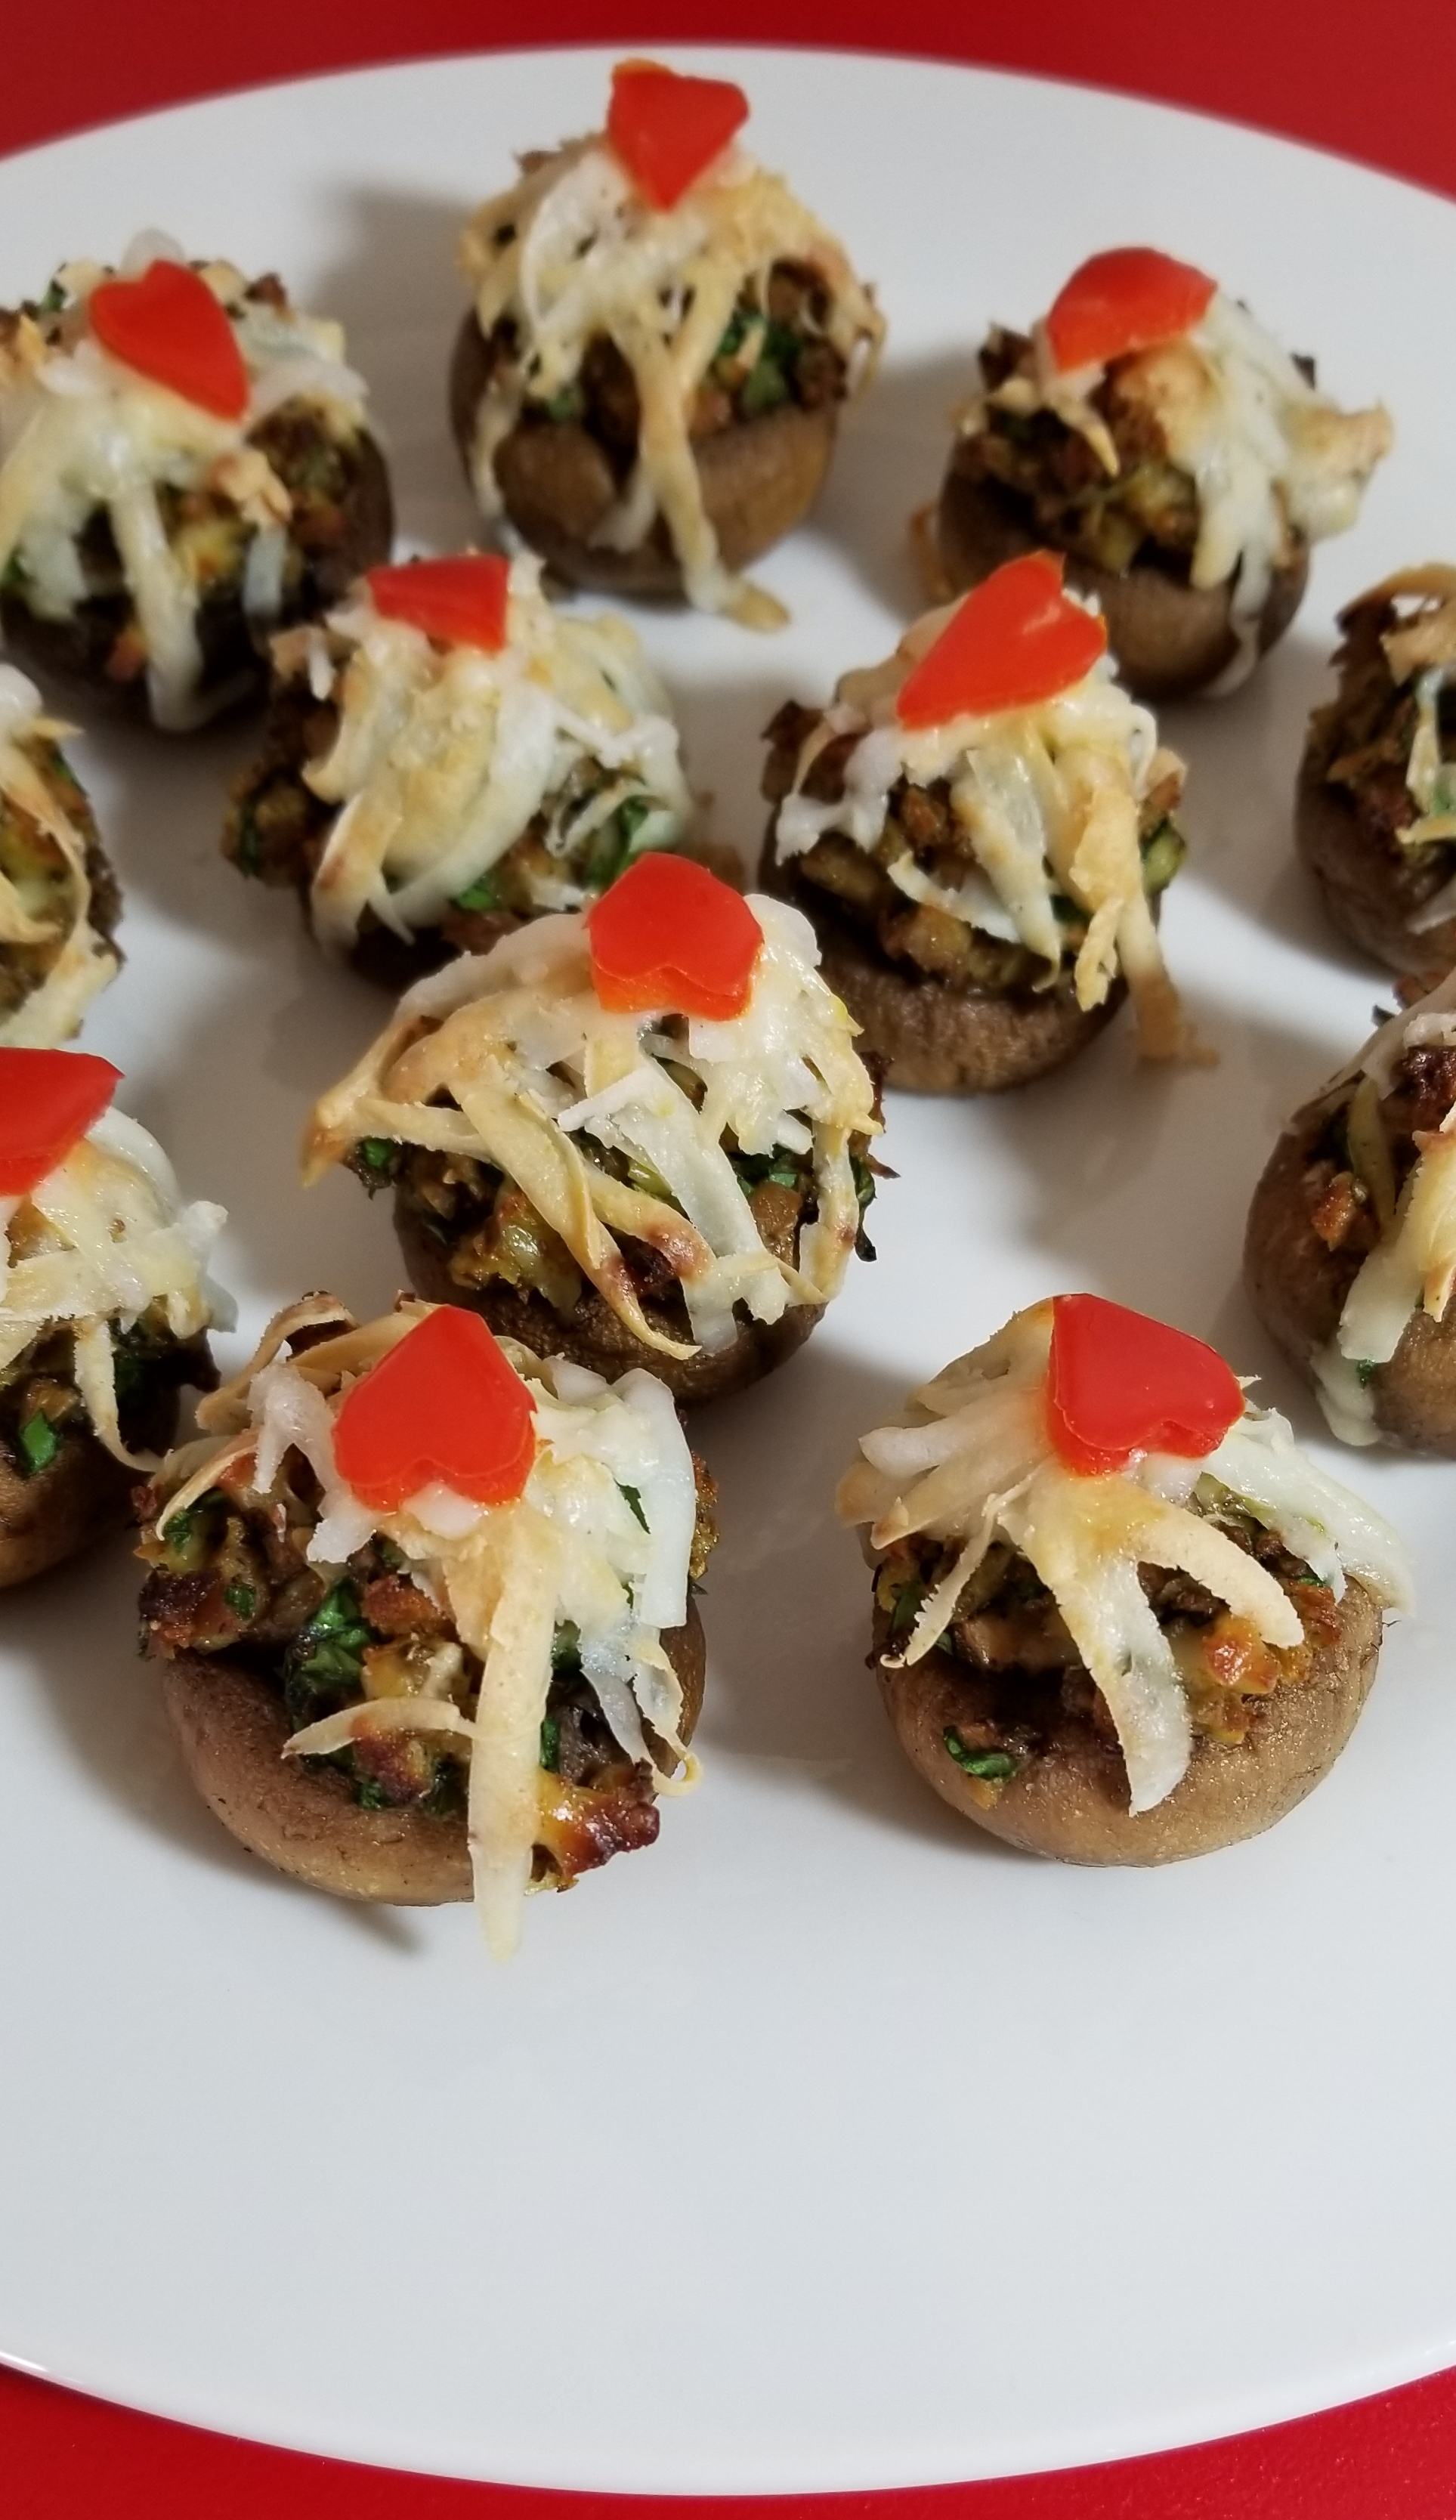 Simple stuffed mushrooms with chicken apple sausage, spinach, almond cheese, and a tiny red pepper heart to top them off!